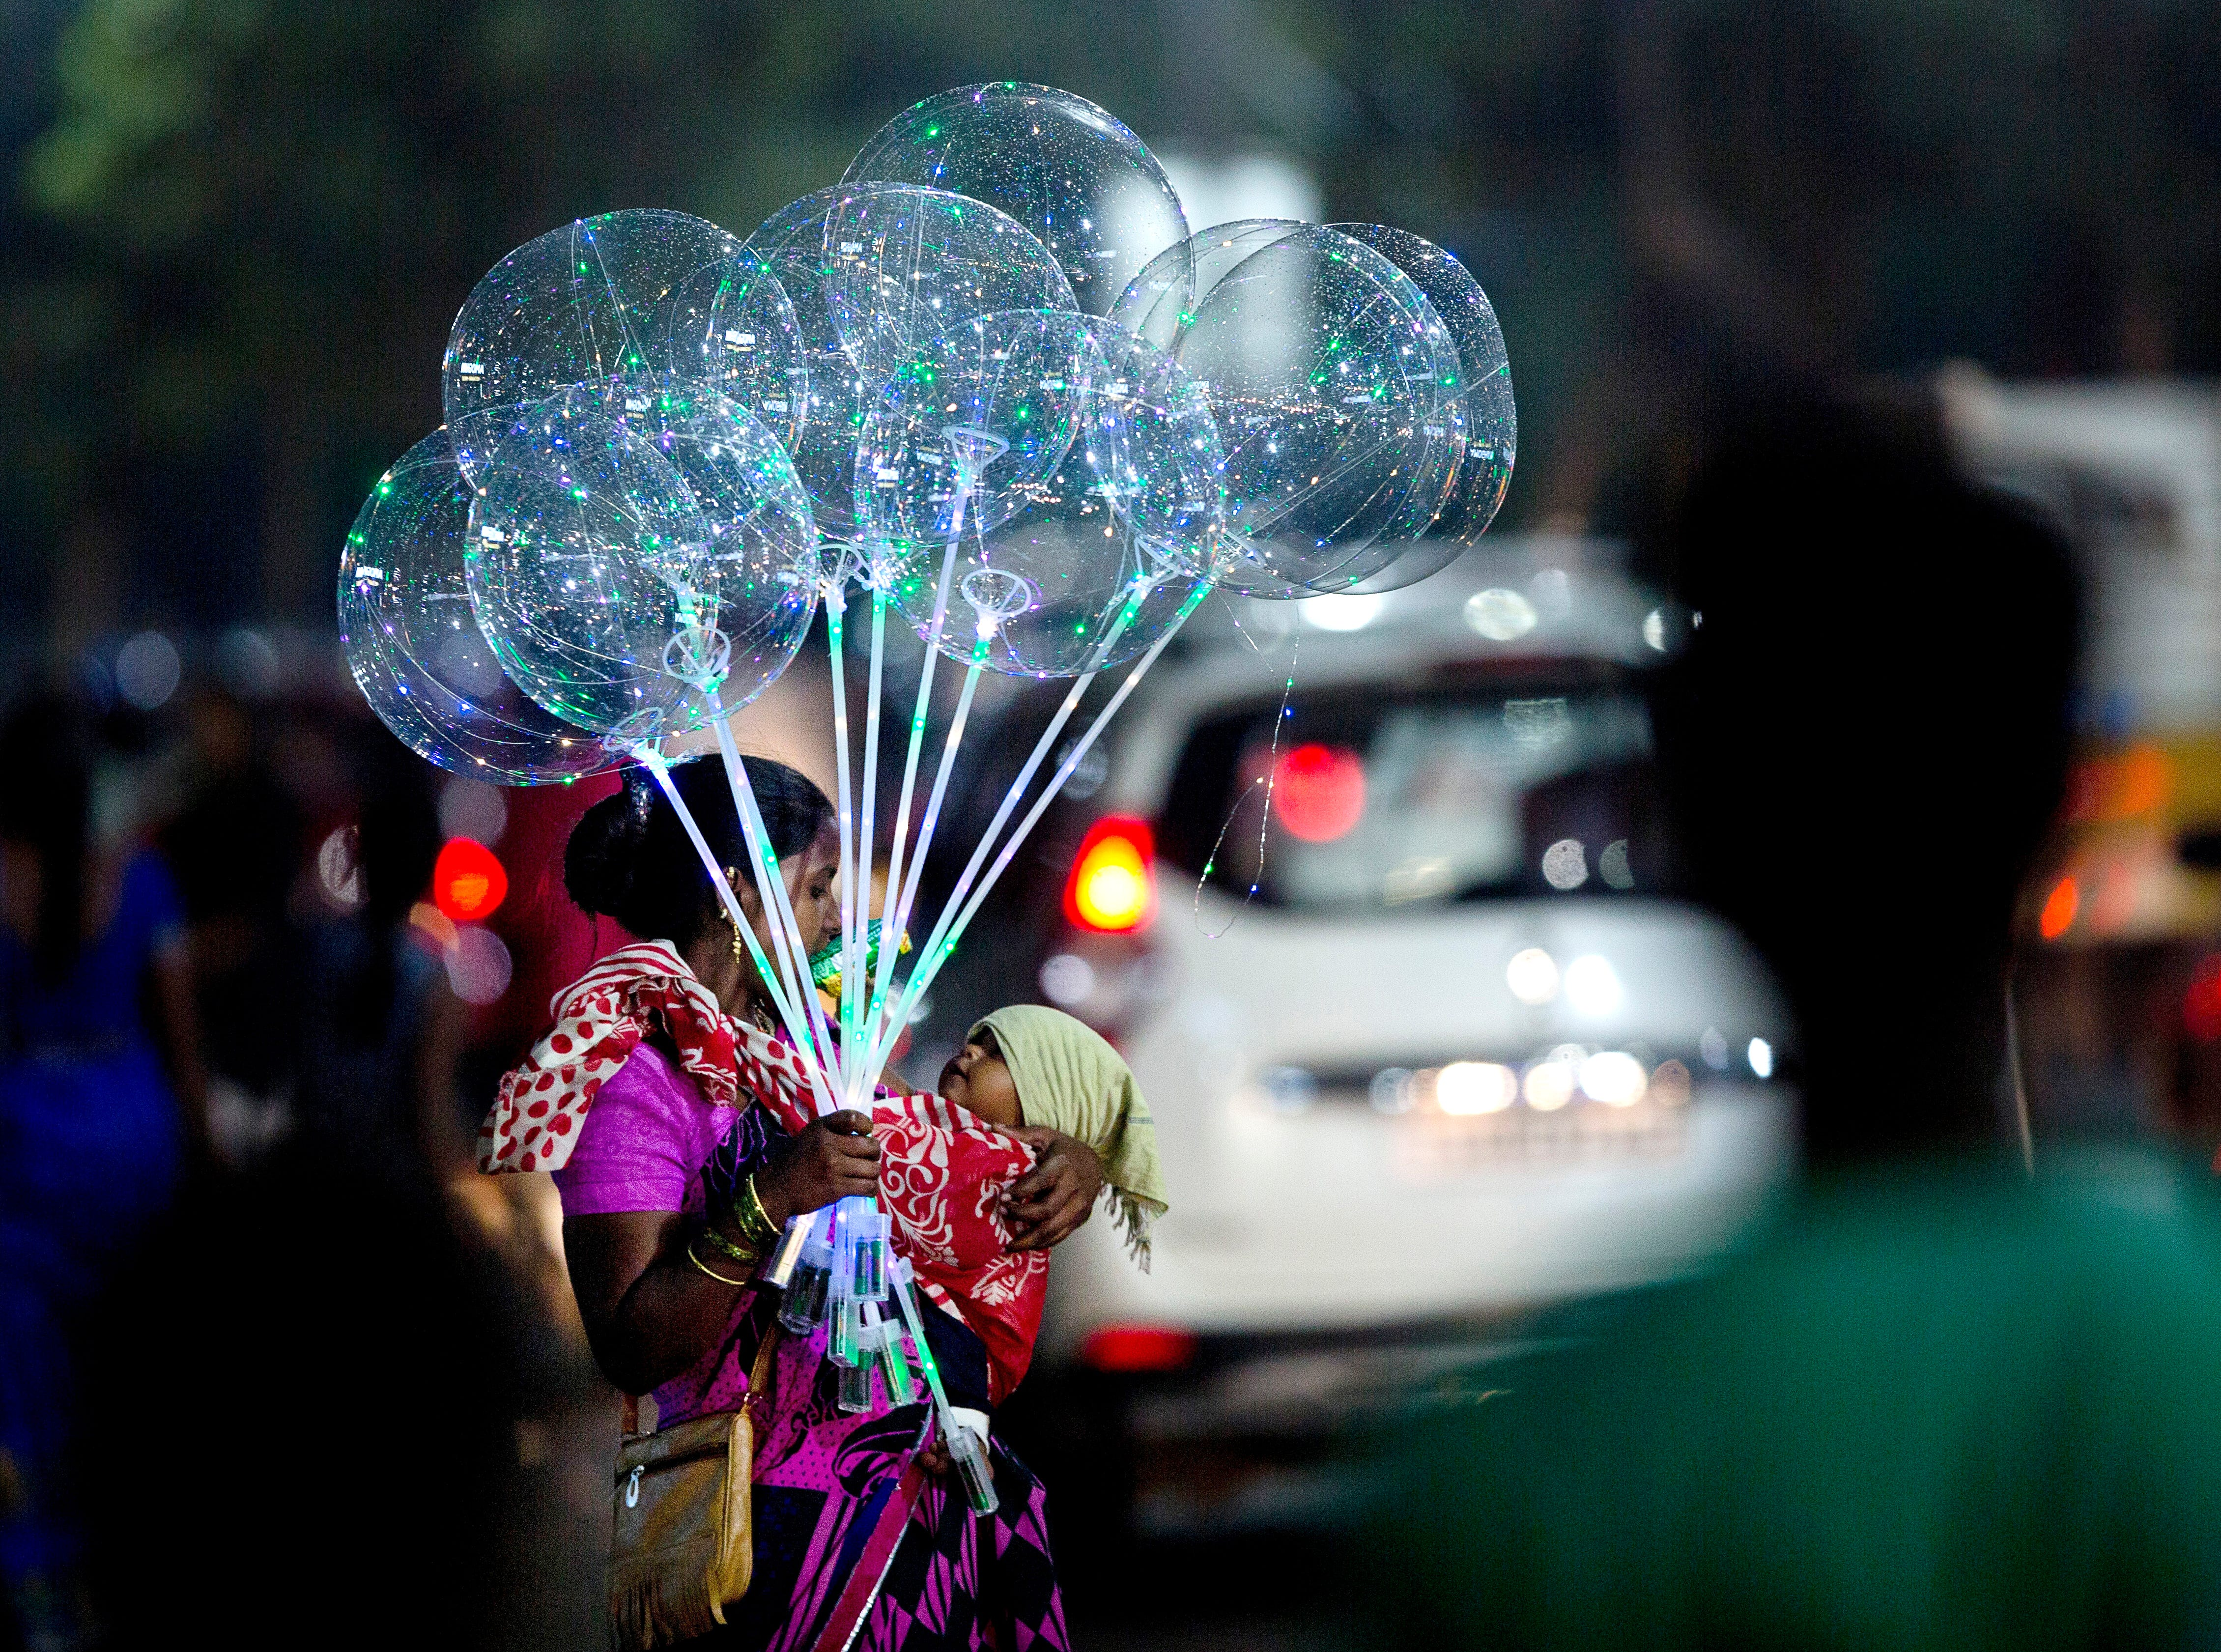 An Indian vendor carries an infant and stands on a street selling balloons in Hyderabad, Friday, Sept. 21, 2018. Some 800 million people in the country live in poverty, many of them migrating to big cities in search of a livelihood and often ending up on the streets.